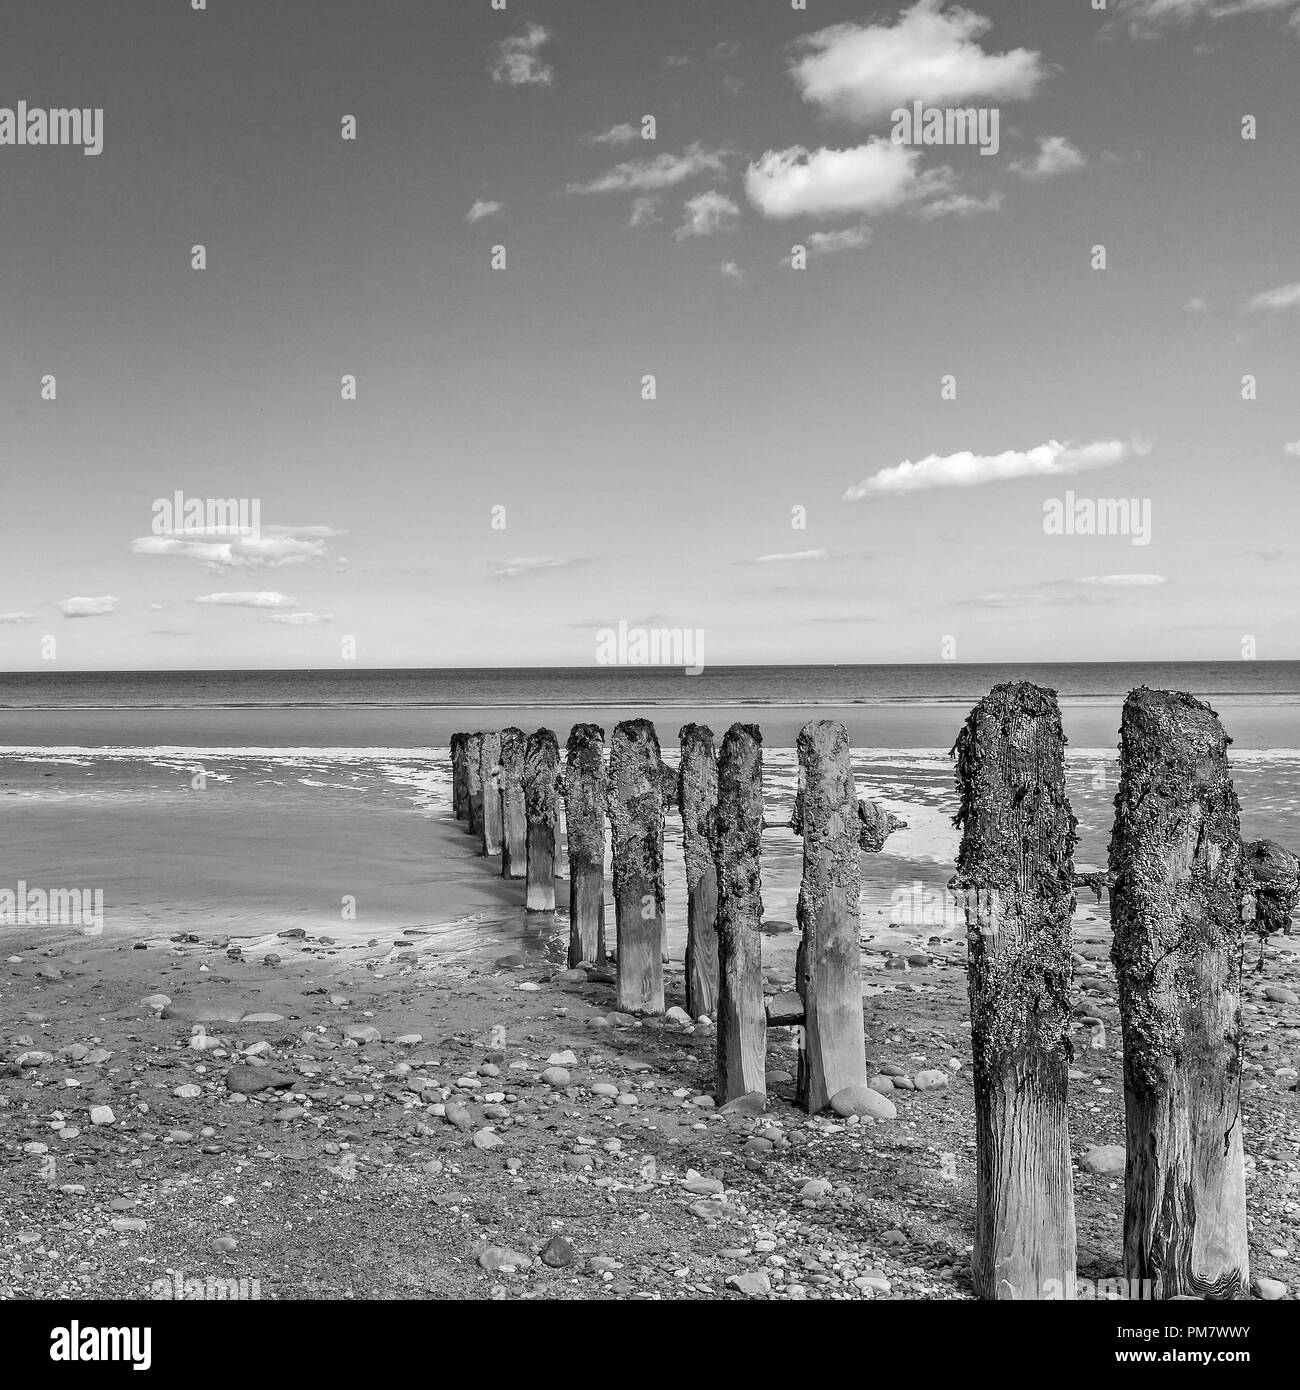 Old and barnacle crusted breakwater posts on a pebble strewn beach reach down towards the sea. A blue sky with clouds is above. Stock Photo